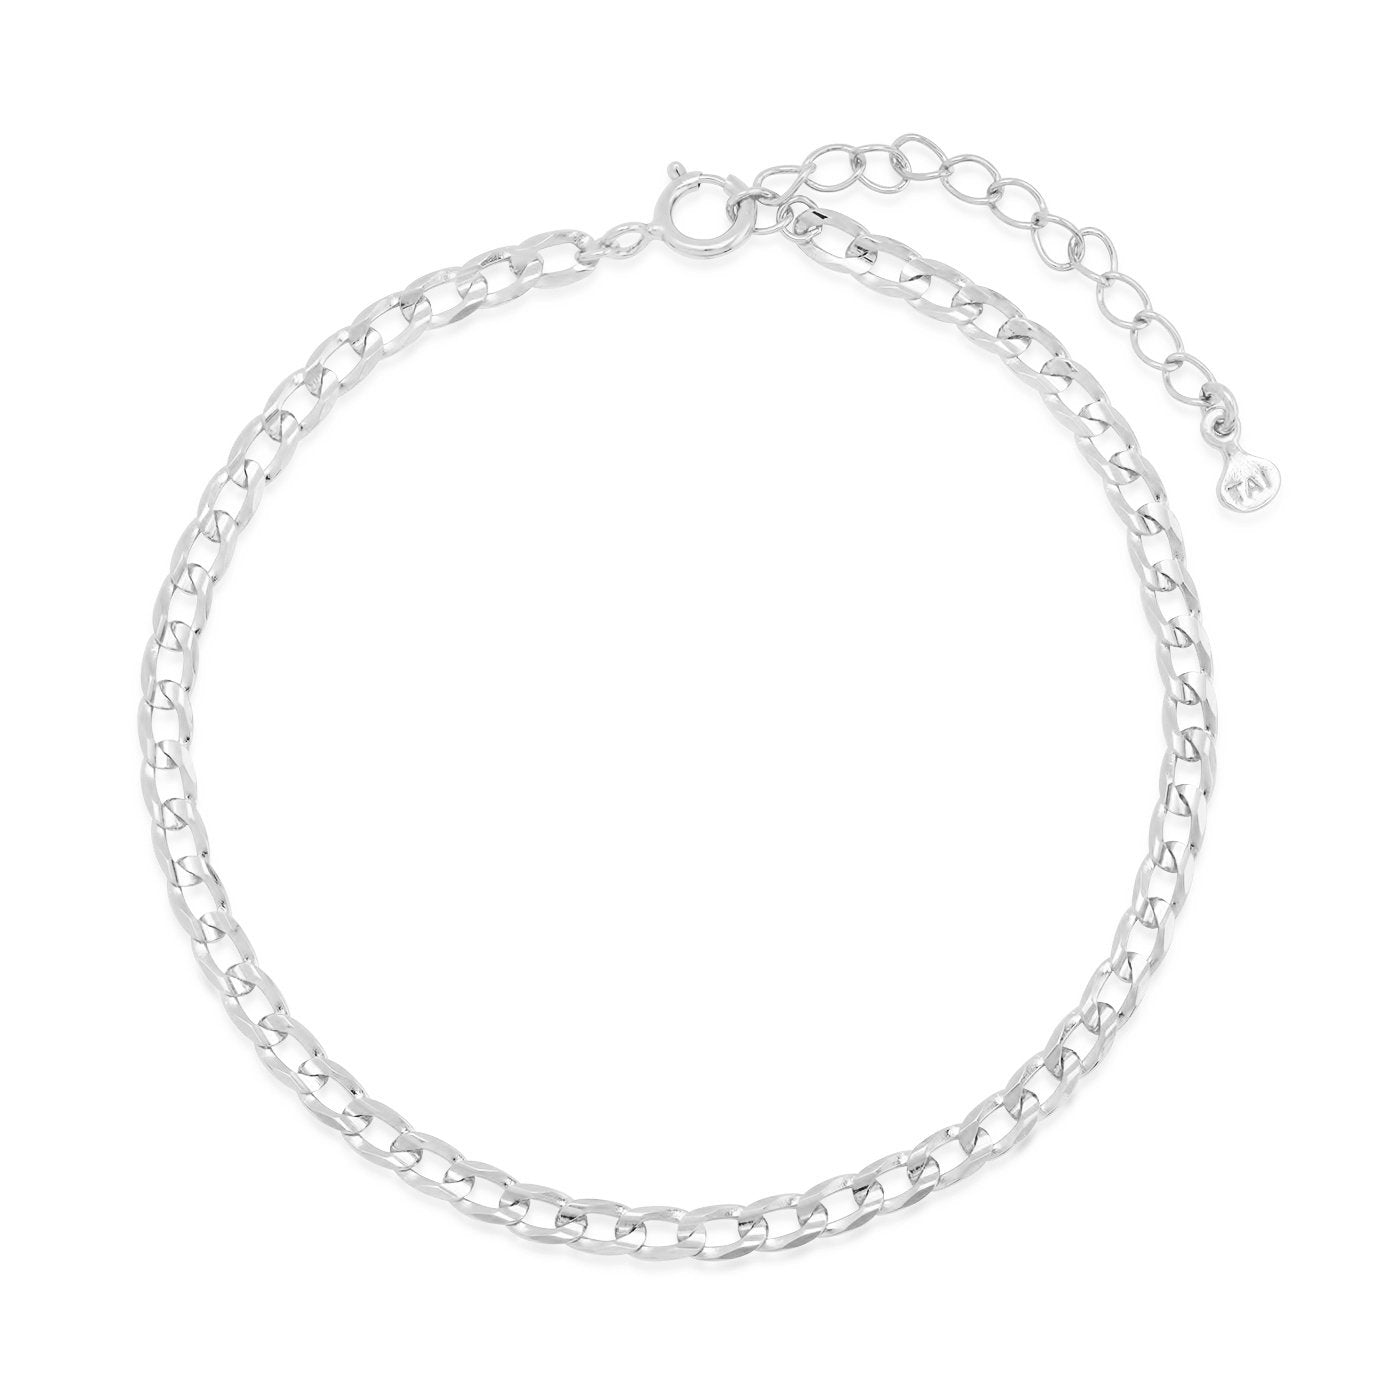 Tai - Braided Chain Bracelet (silver)